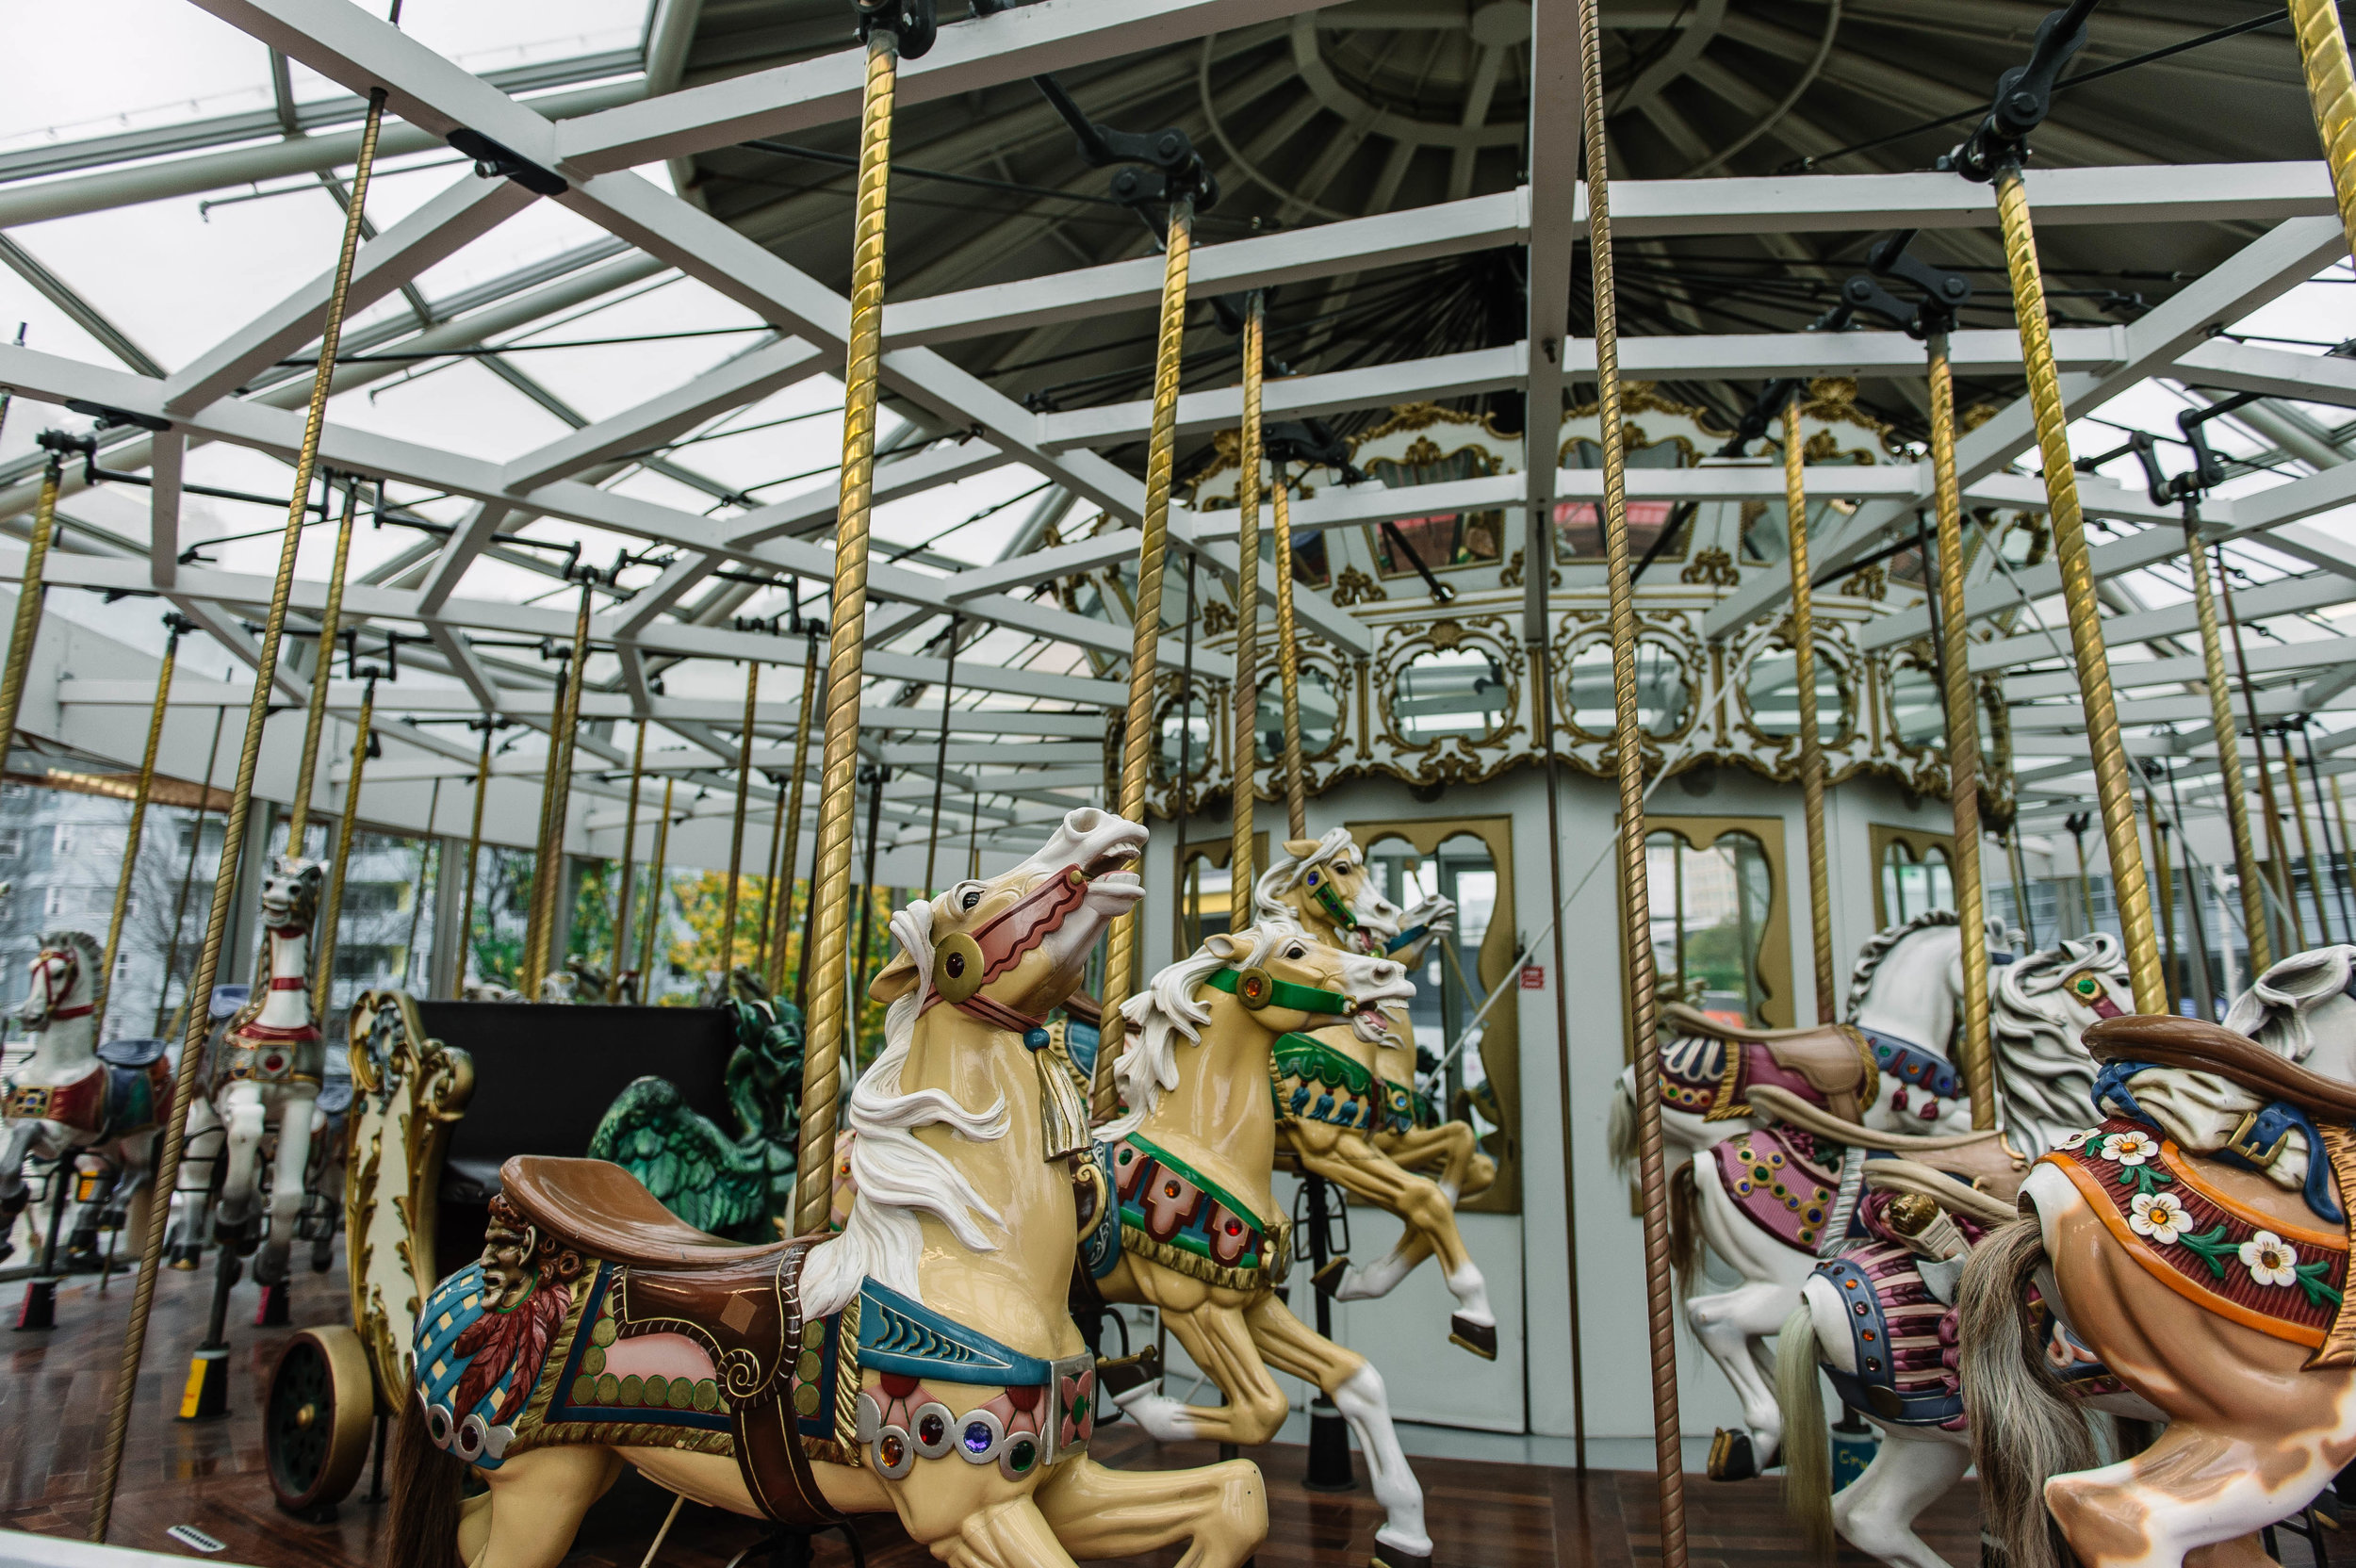 The Carousel at the Children's Creativity Museum